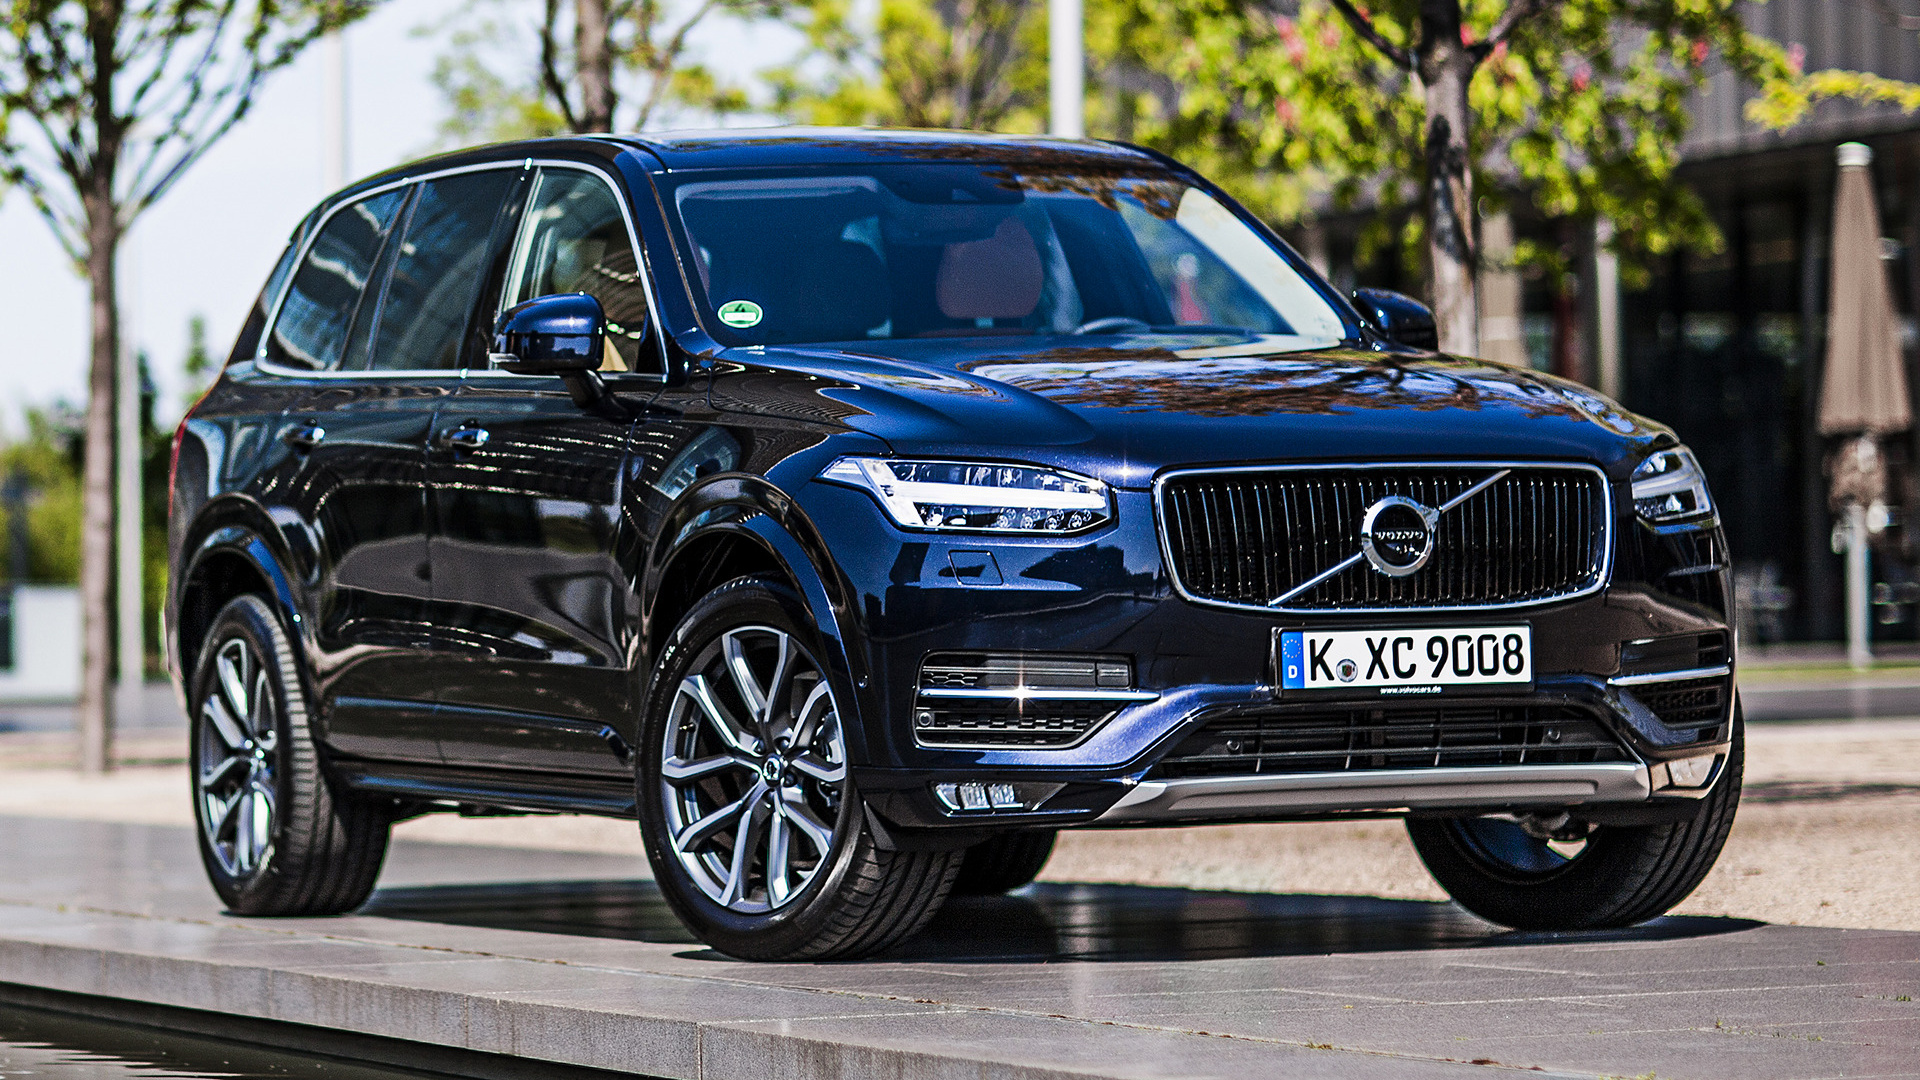 Volvo XC90 Momentum (2015) Wallpapers and HD Images - Car ...